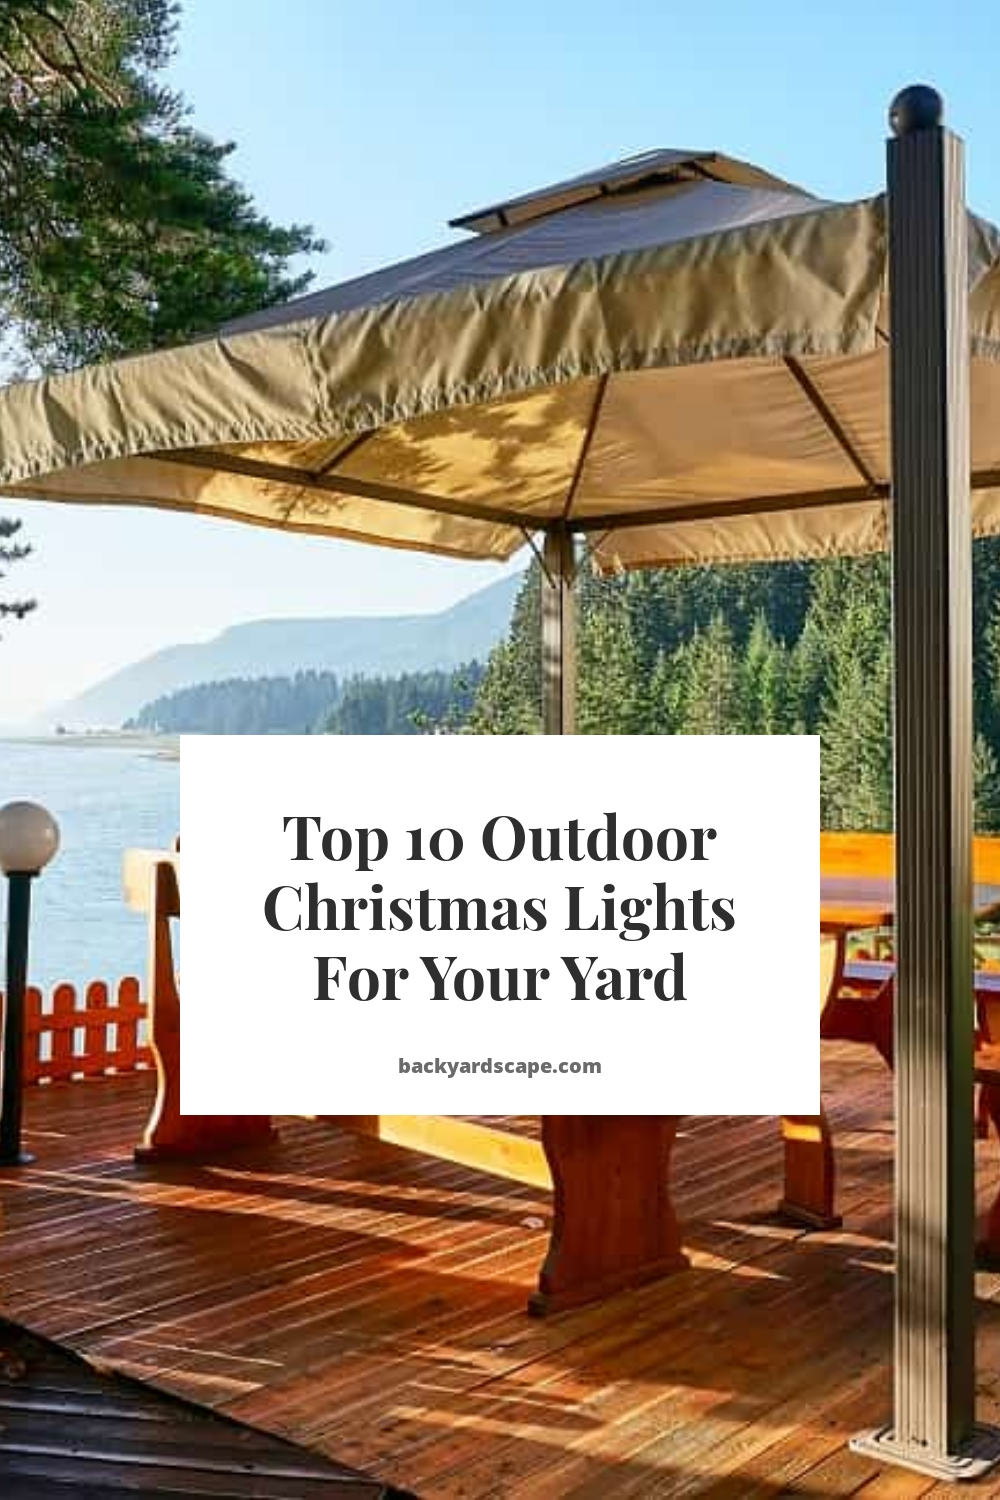 Top 10 Outdoor Christmas Lights For Your Yard